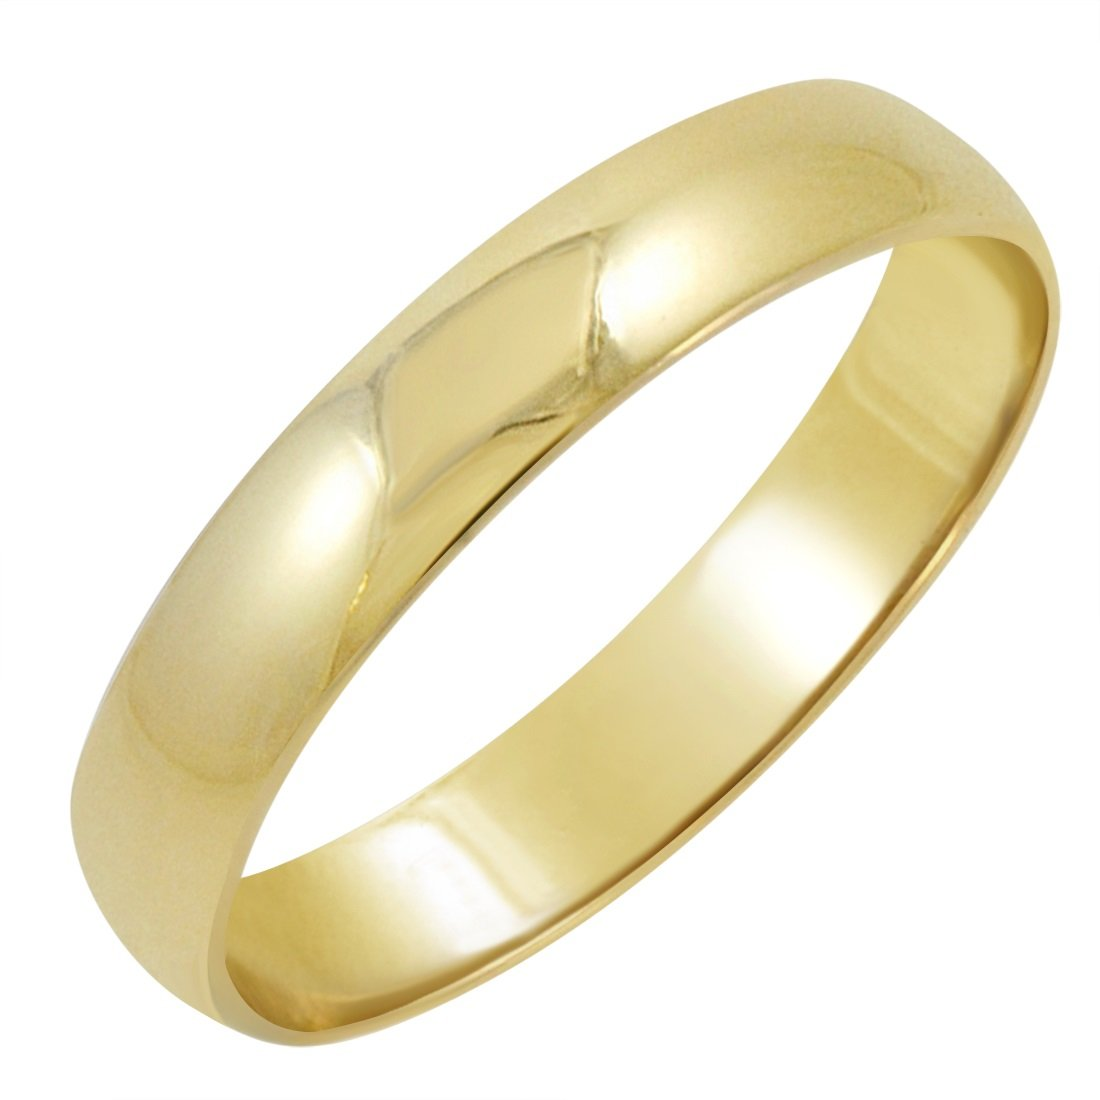 Men's 10K Yellow Gold 4mm Classic Fit Plain Wedding Band (Available Ring Sizes 7-12 1/2) Size 10